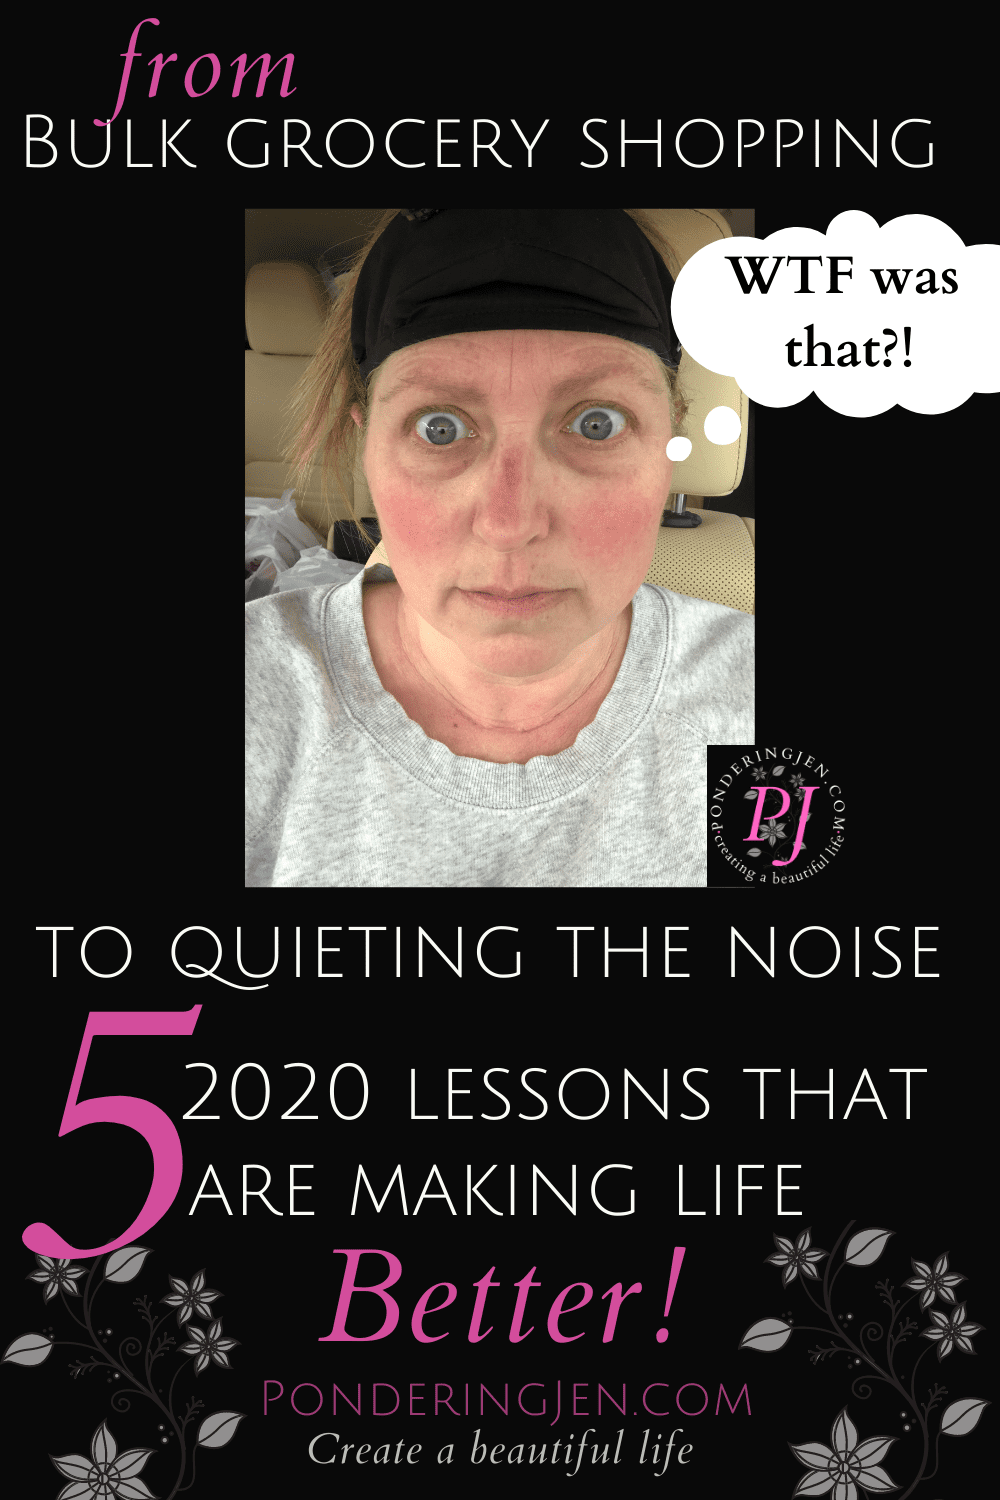 woman in car wearing mask with text 2020 lessons from bulk grocery shopping to quieting the noise